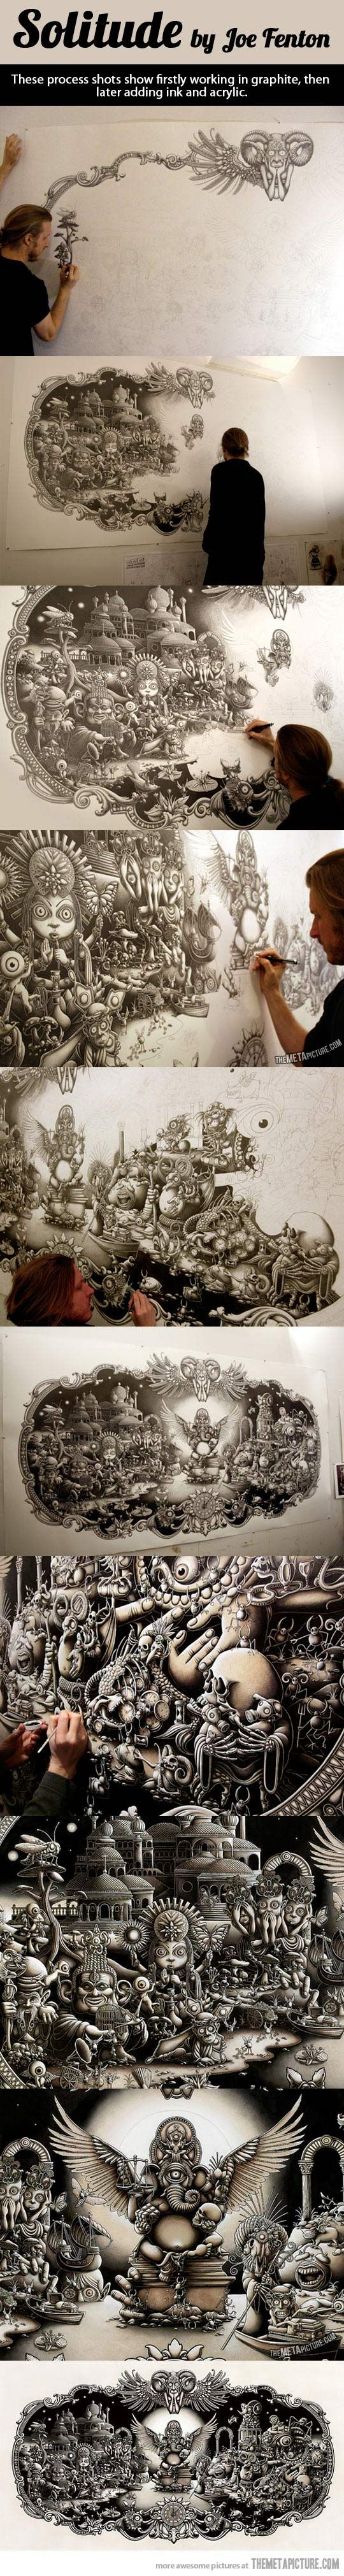 Process shots of awesome mural…....Looks like what would happen if you gave my Sister free reign on a blank wall.